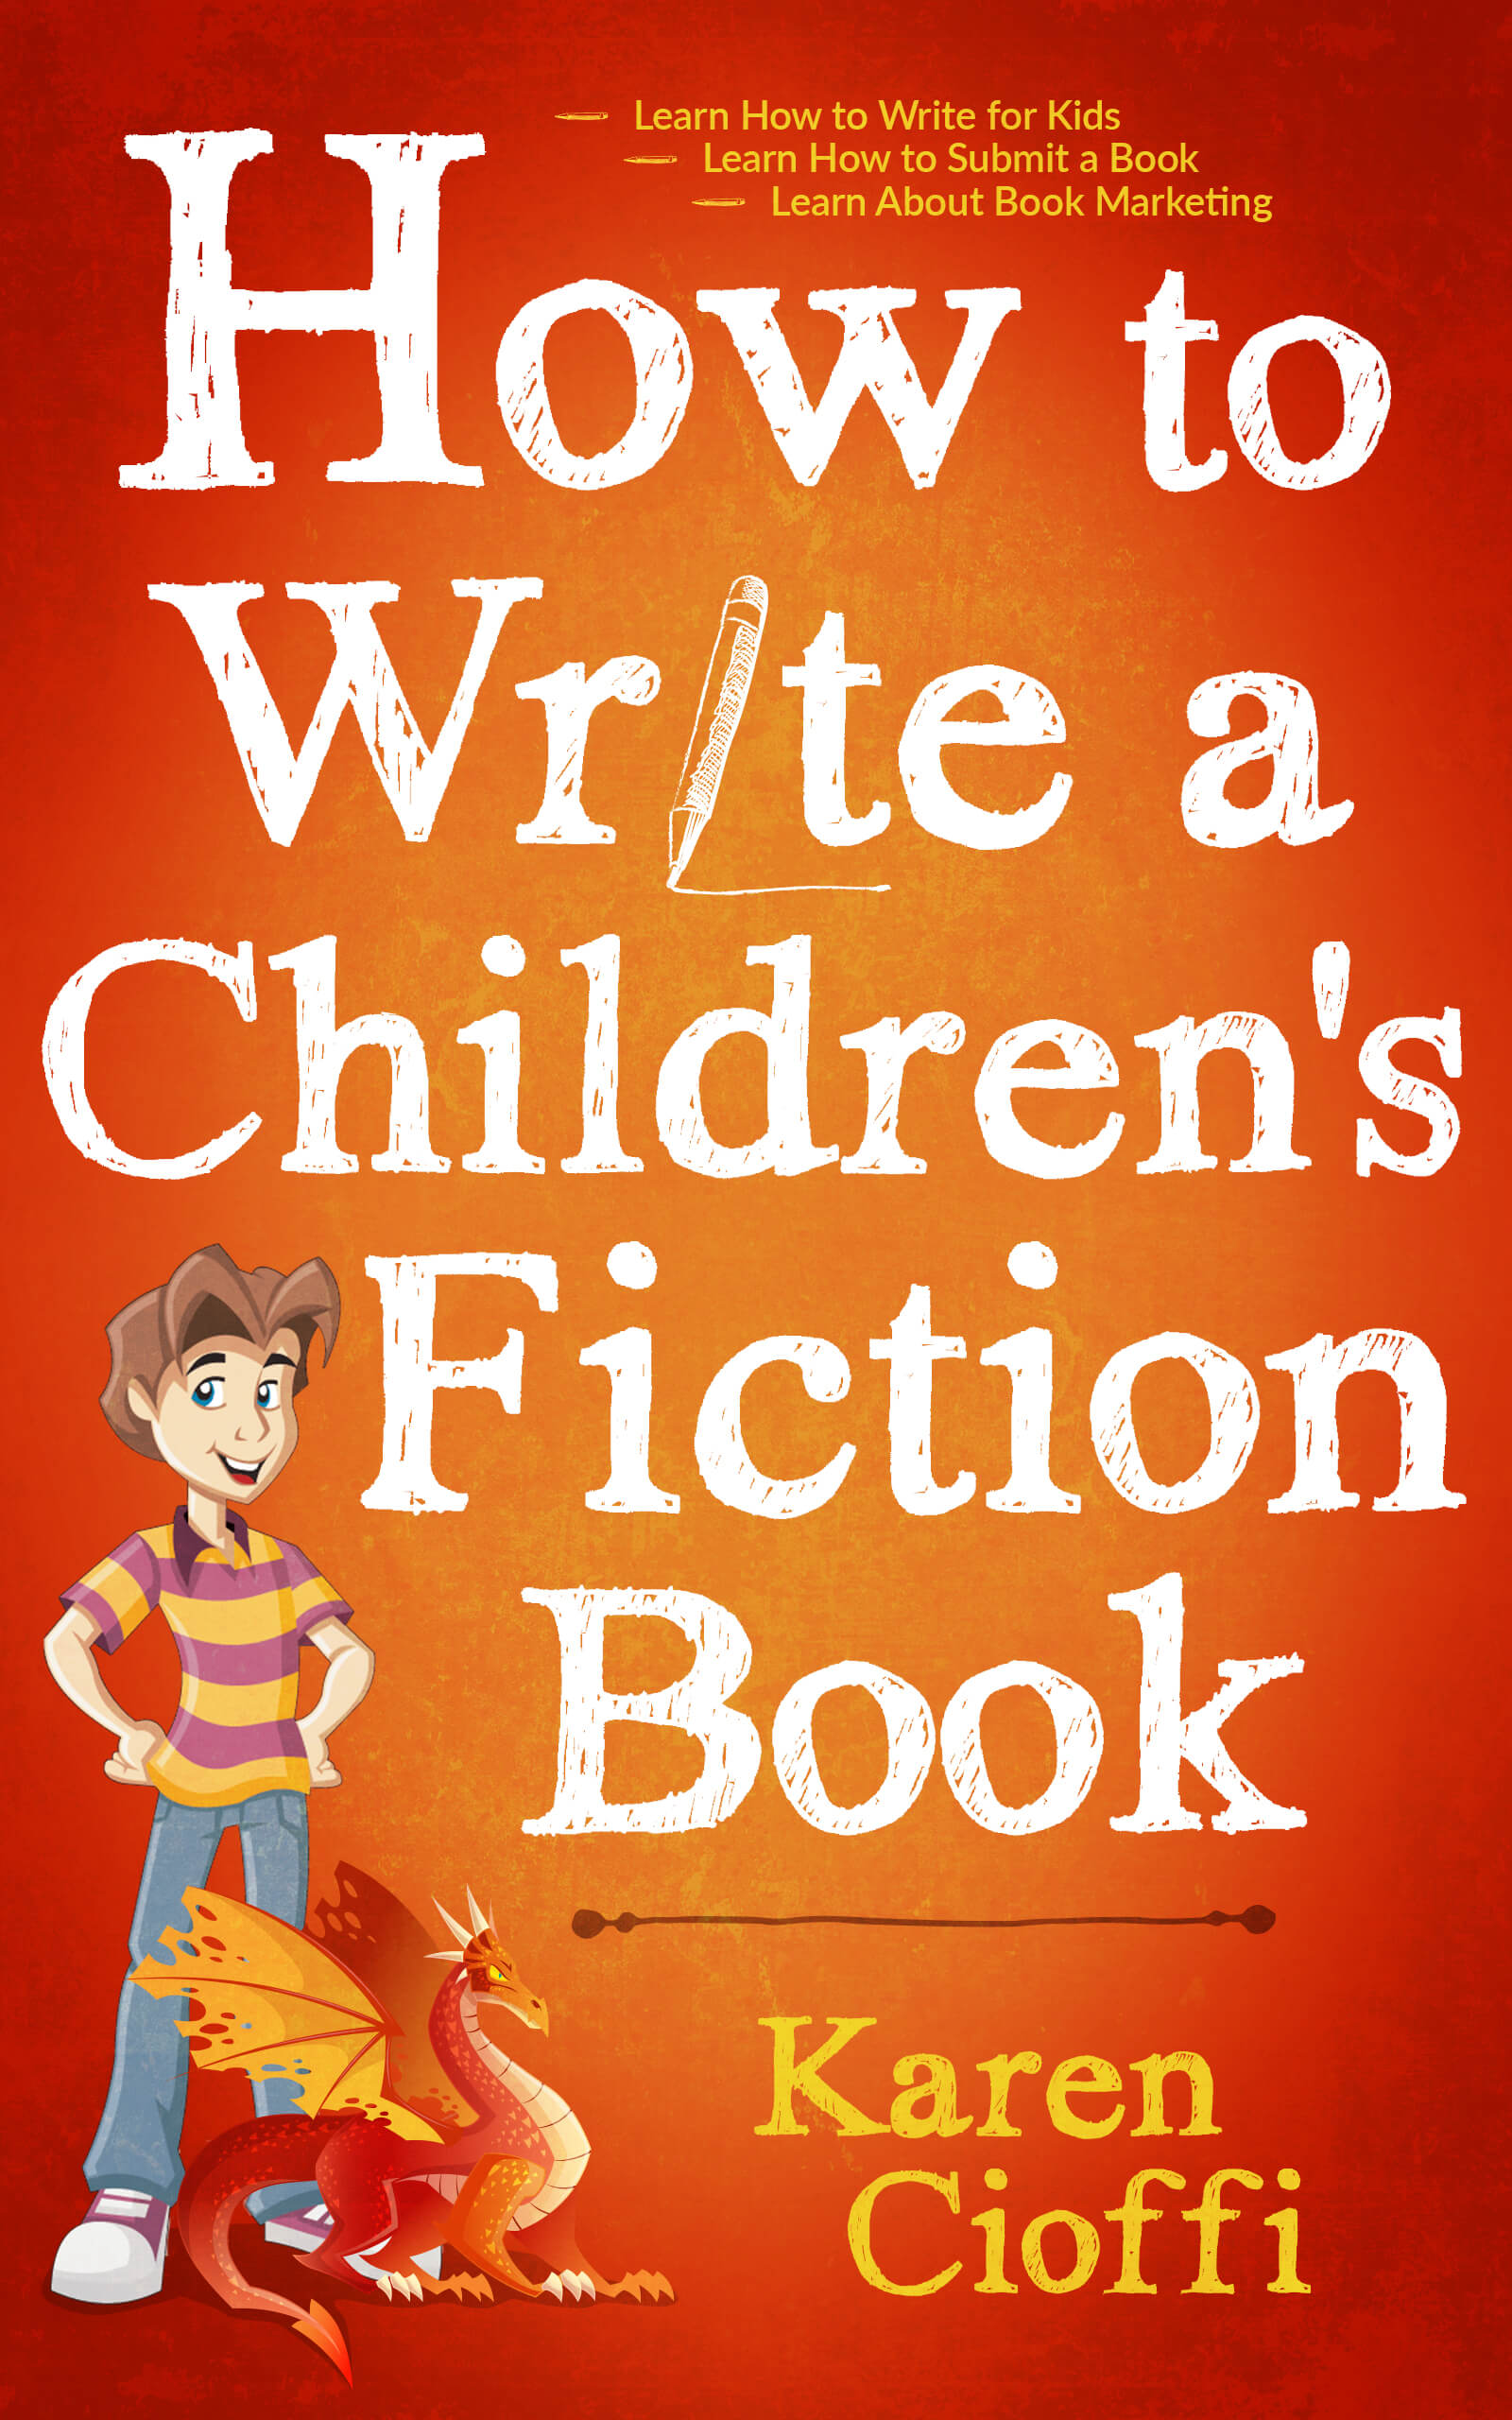 How to Write a Children's Fiction Book_bc3a SMALL